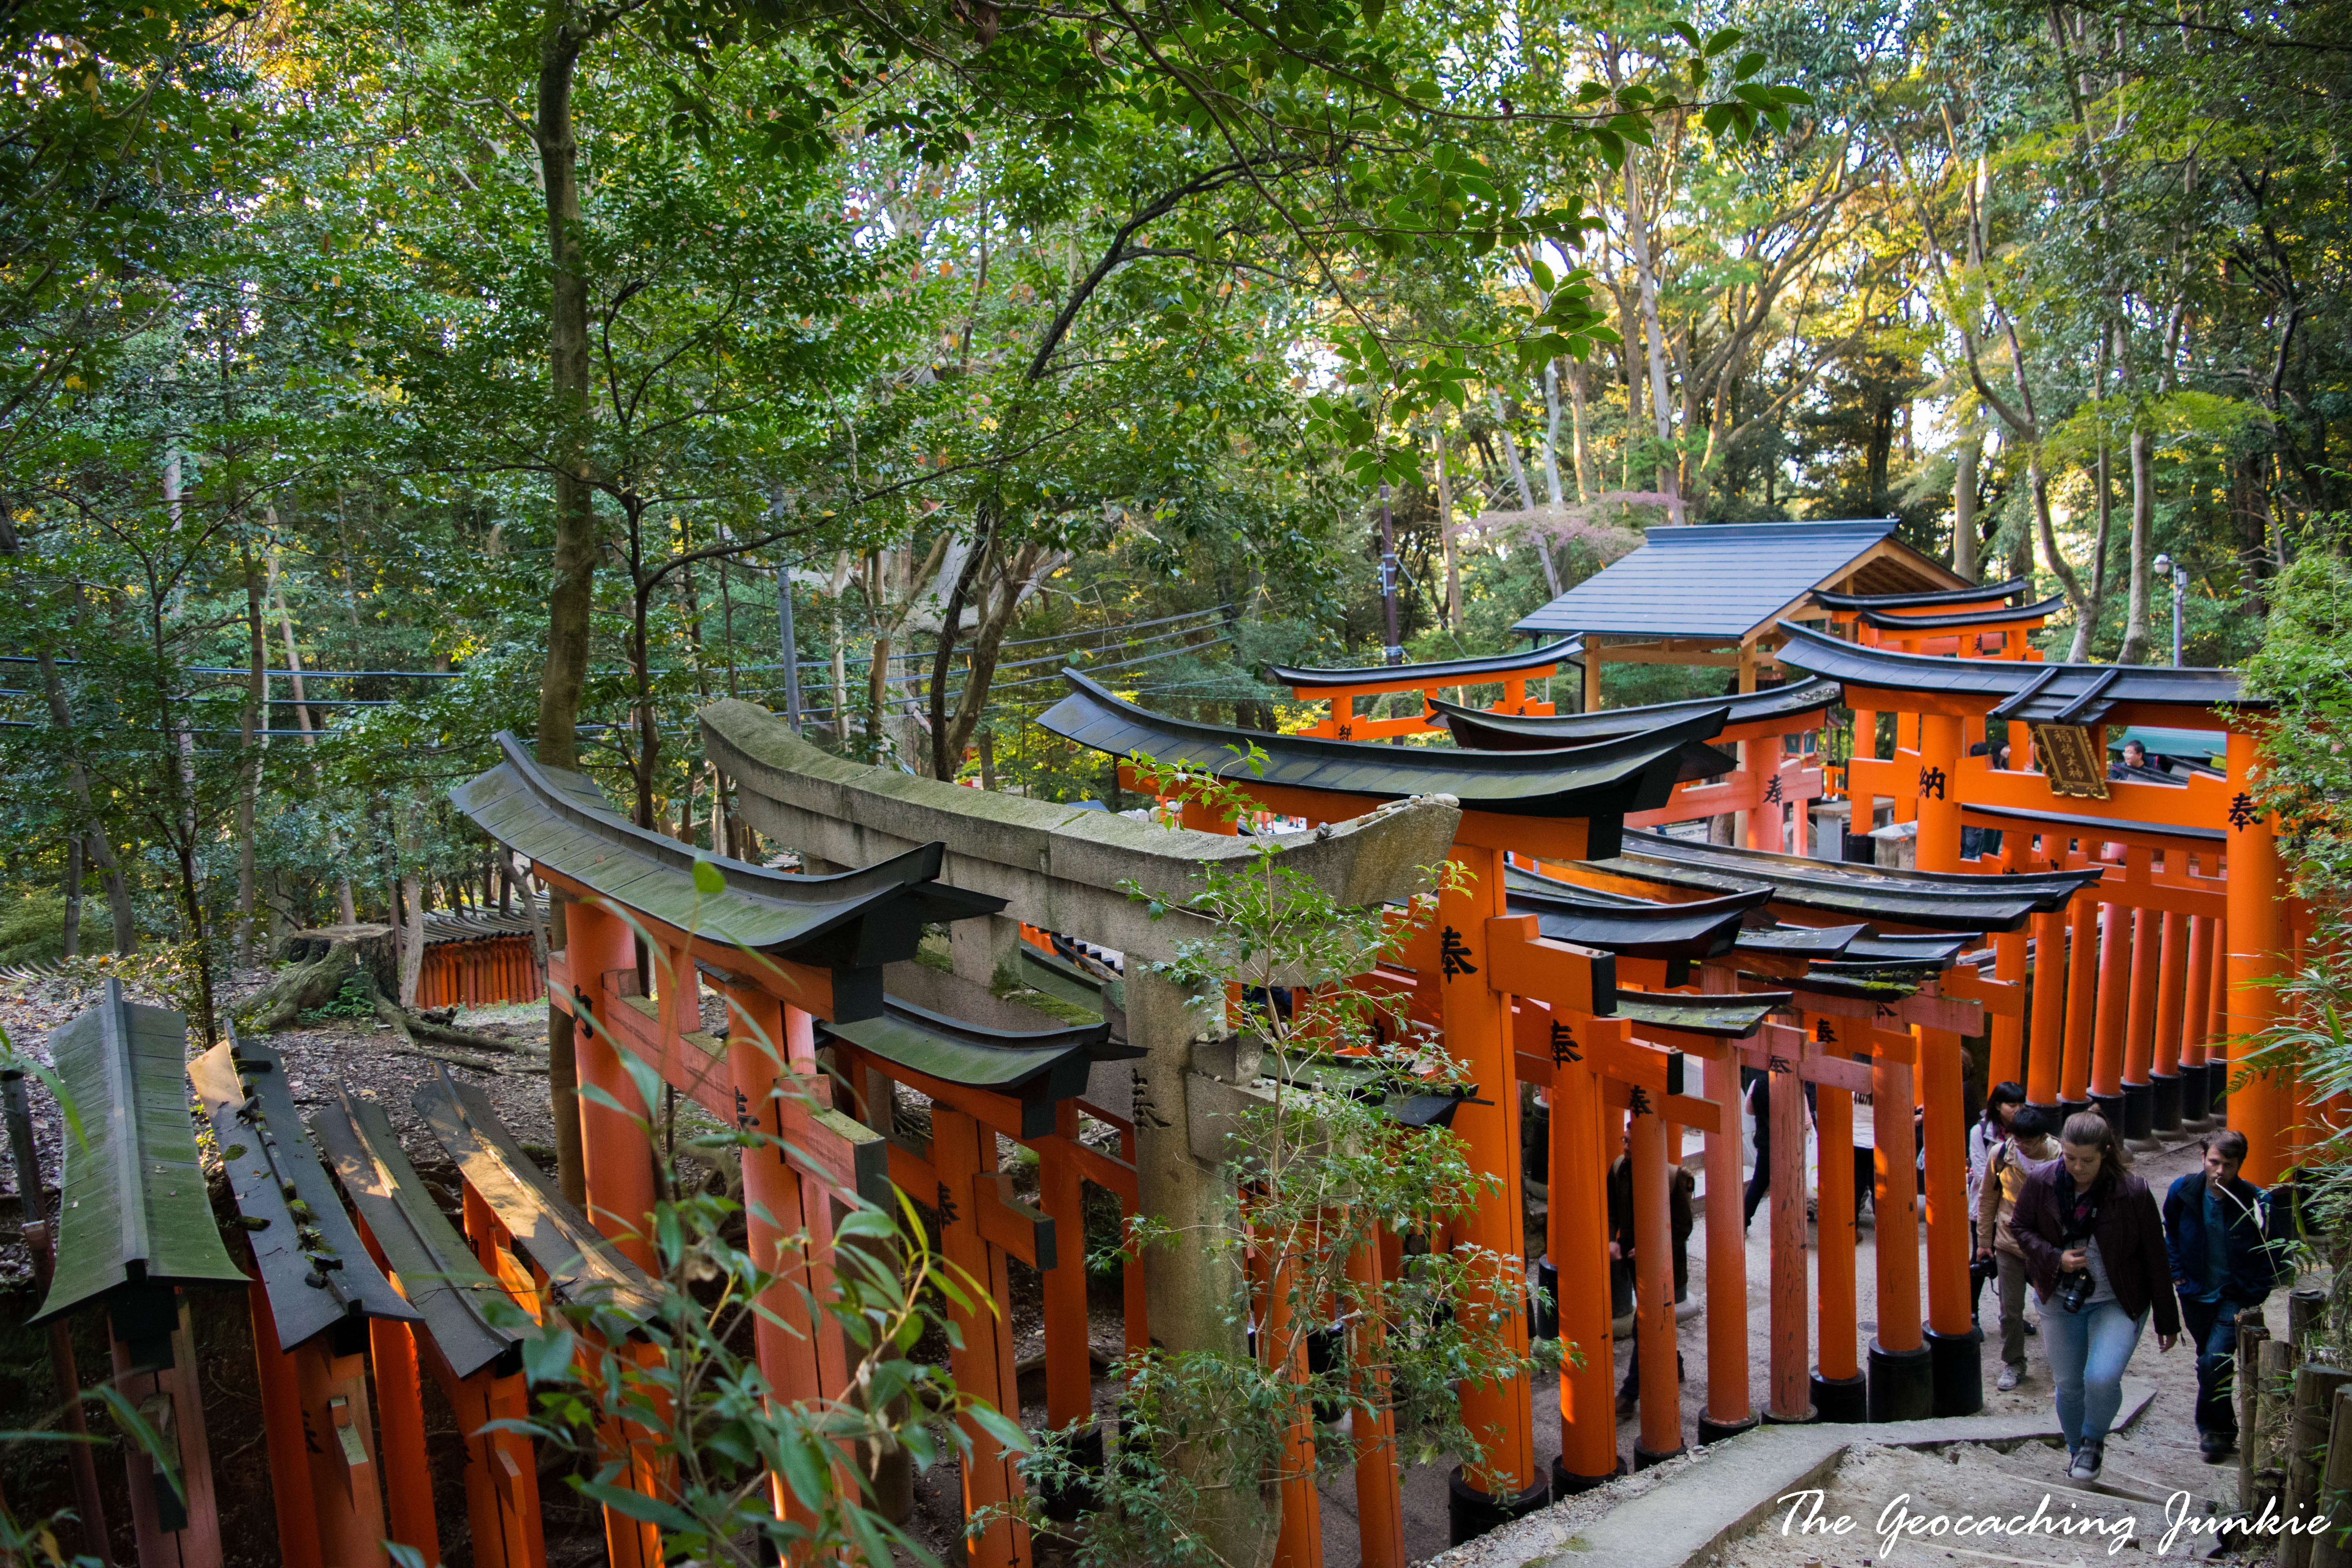 Fushimi Inari-taisha and the 10,000 Gates